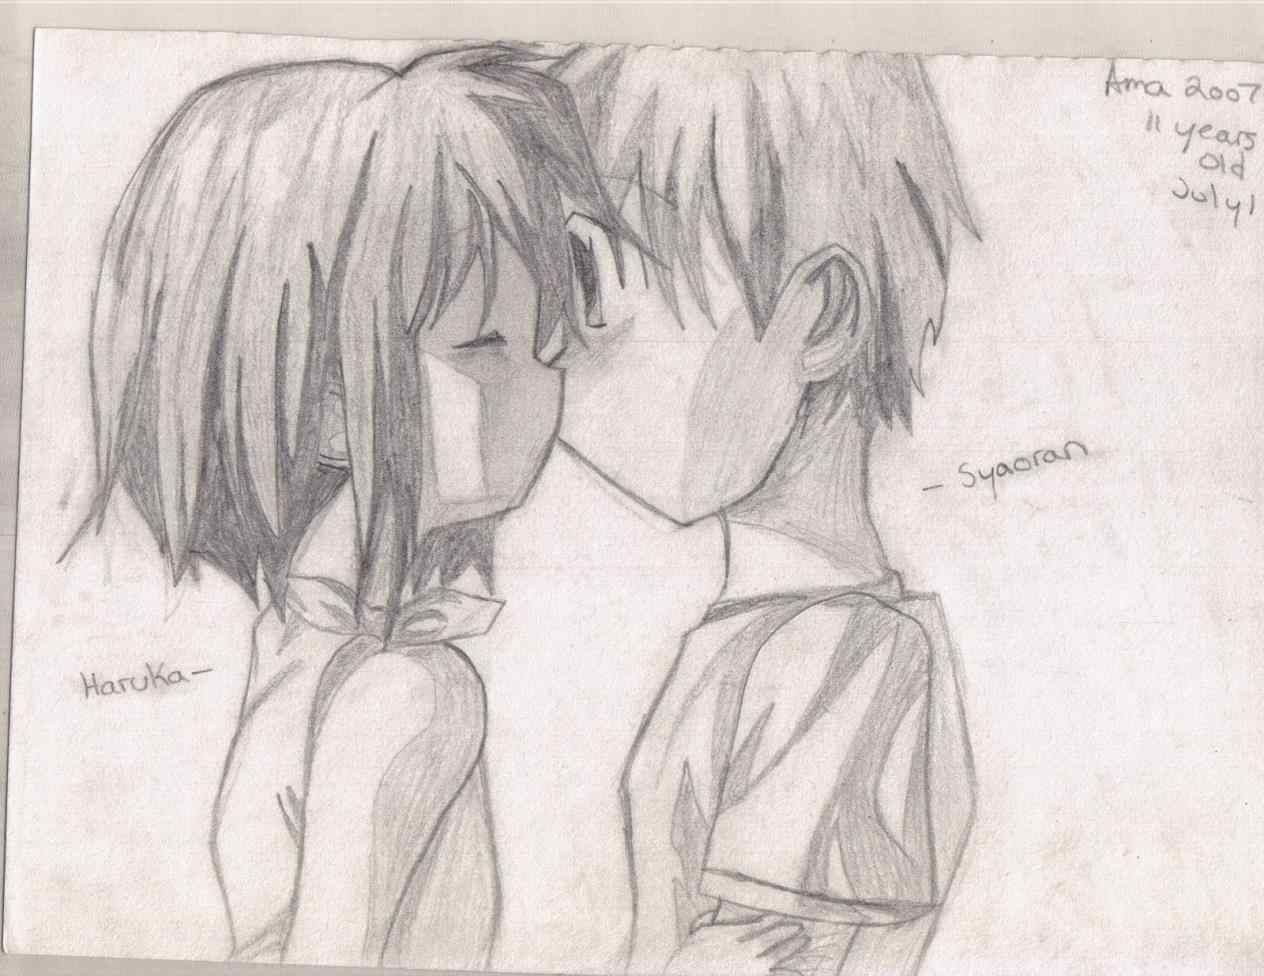 anime love drawing at getdrawings | free for personal use anime